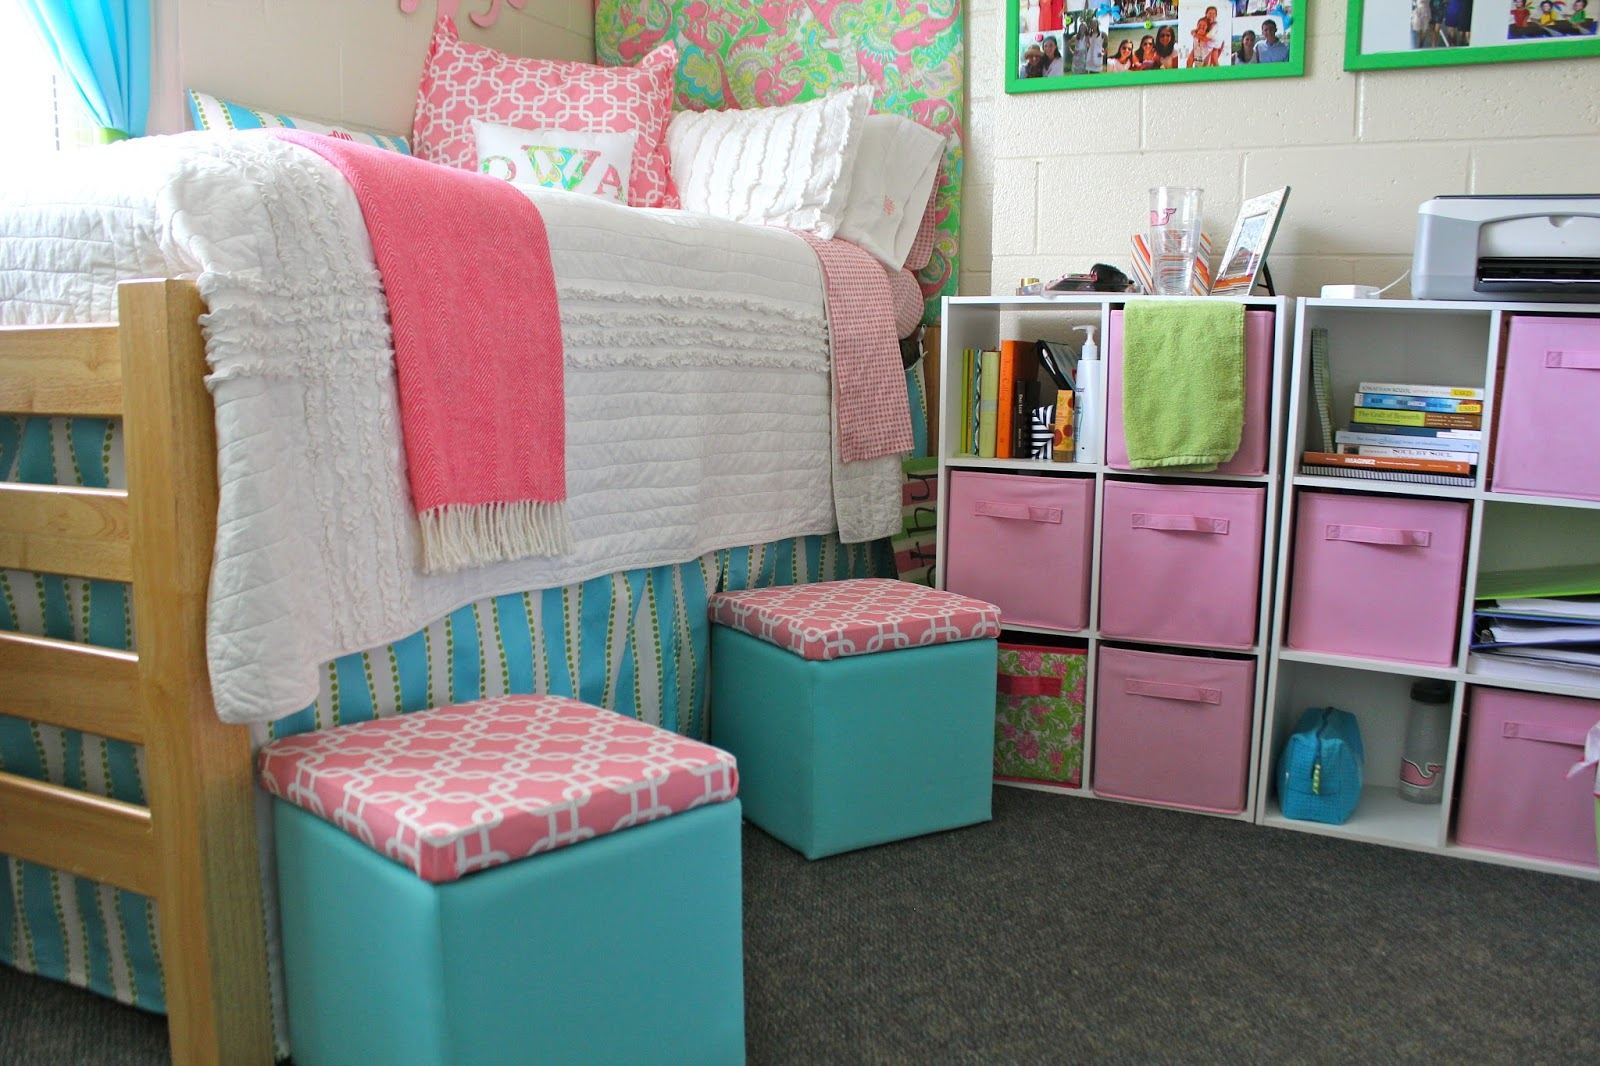 Miss southern prep preppy dorm showcase round 4 dorothy - Dorm underbed storage ideas ...